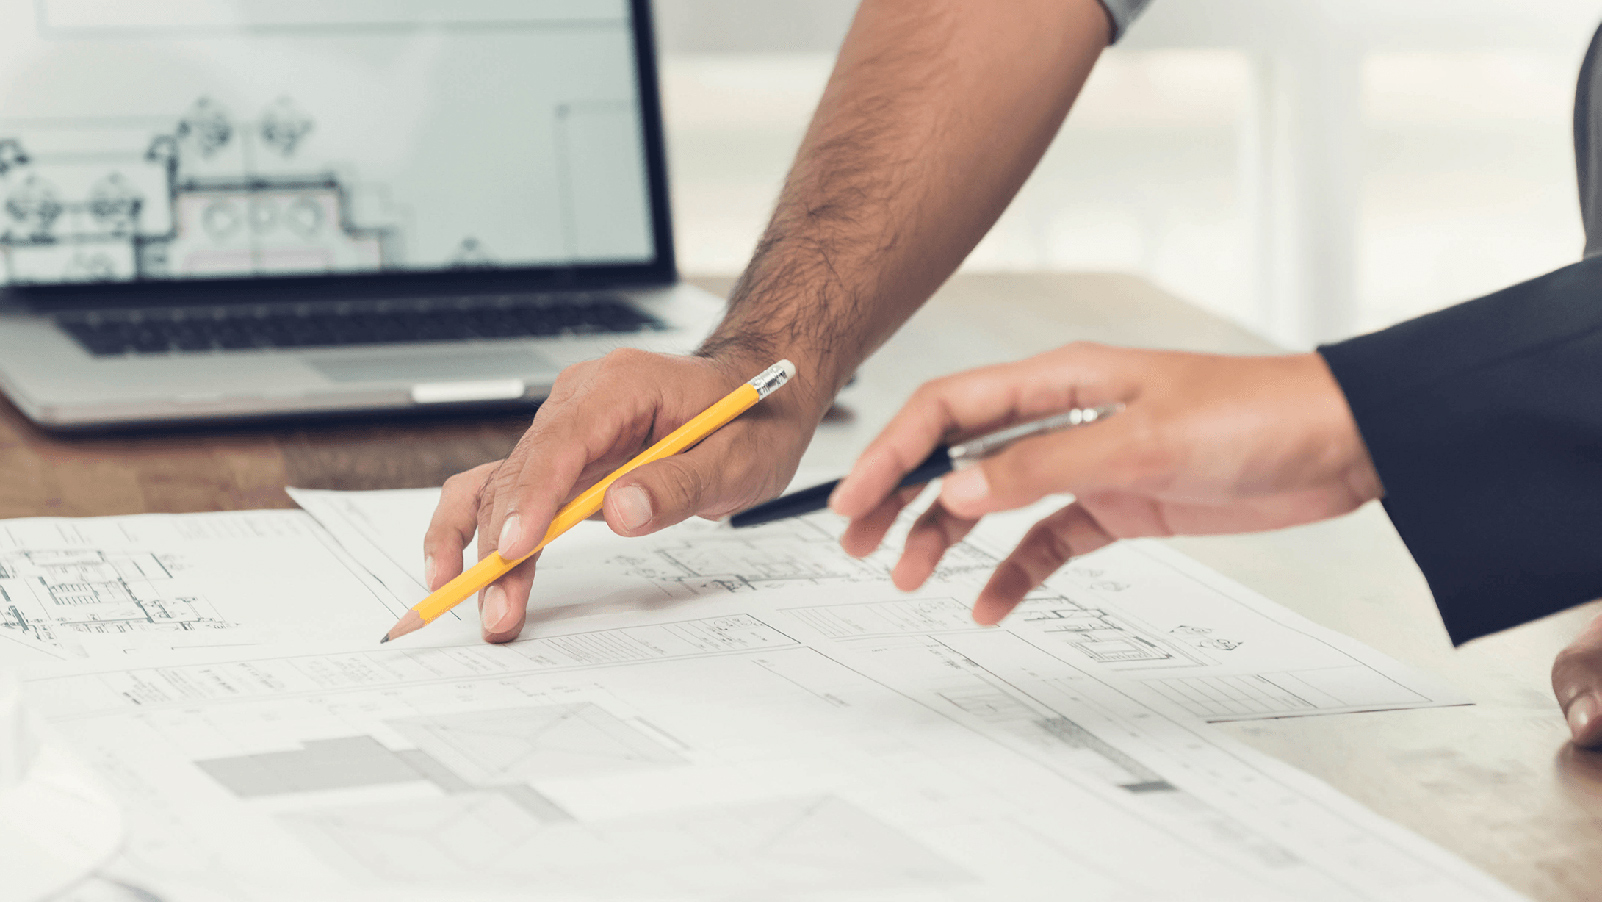 Two people working on blueprints.